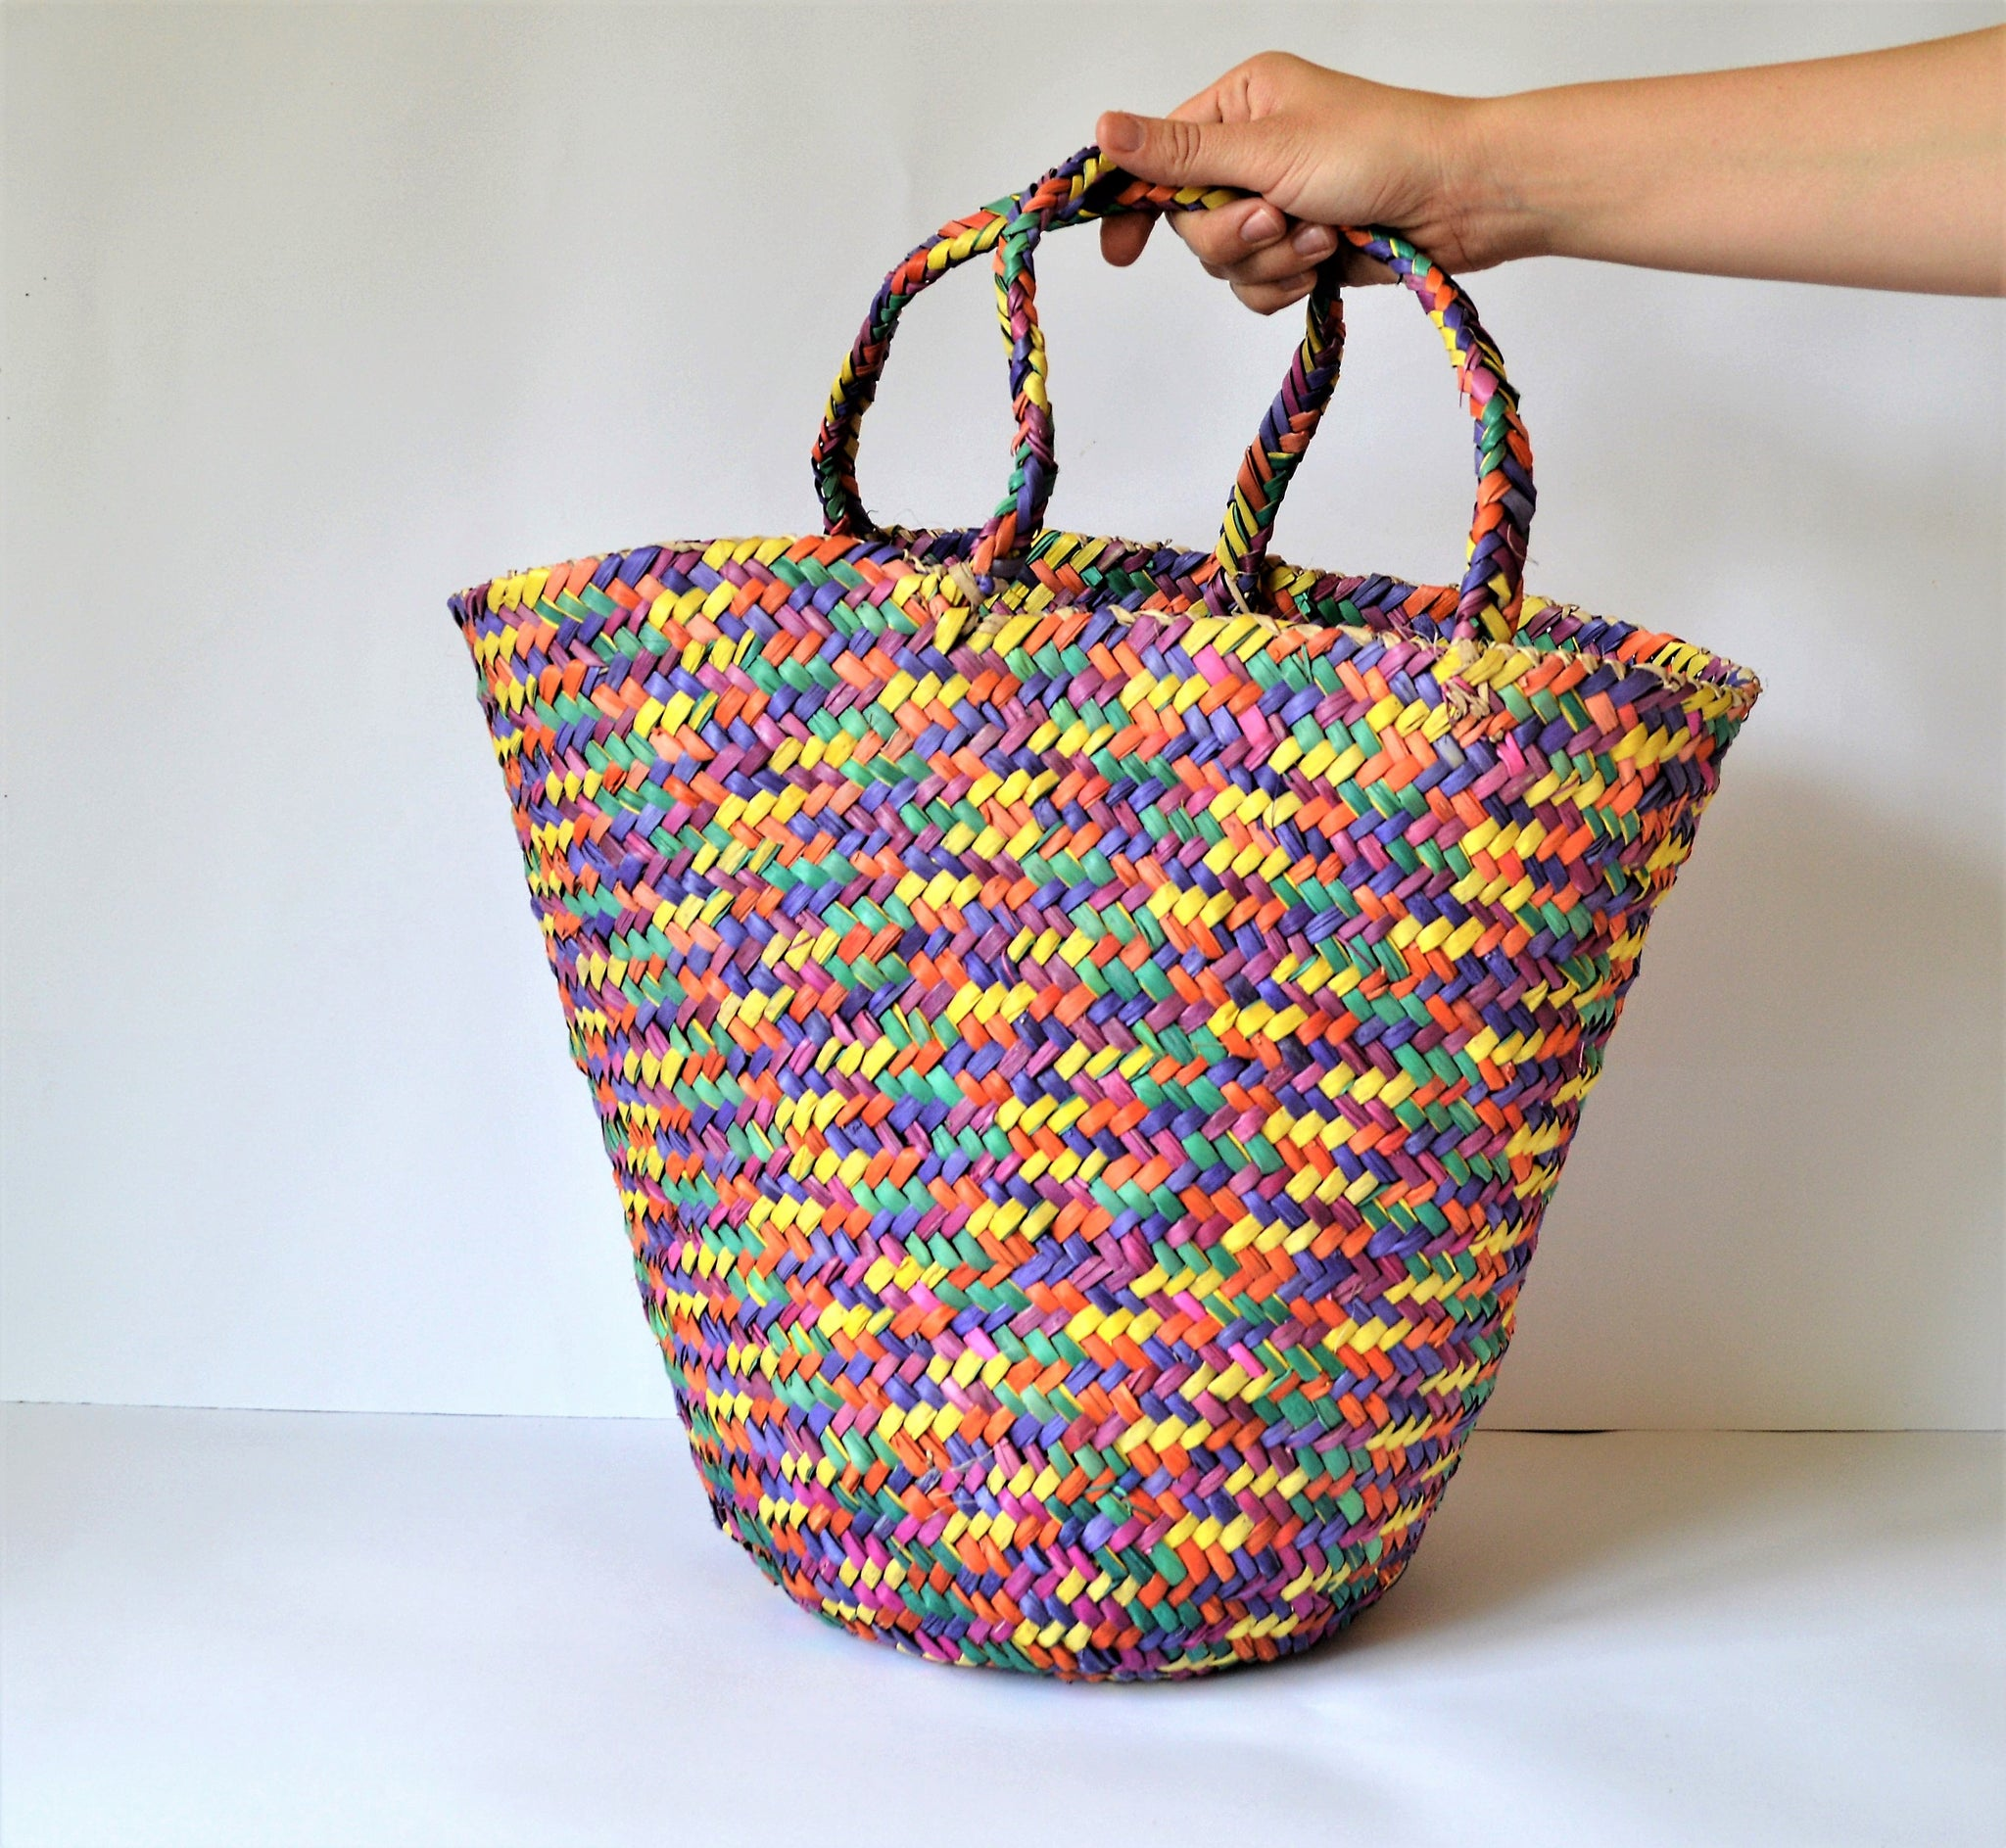 Nubian basket, Woven basket, Straw basket